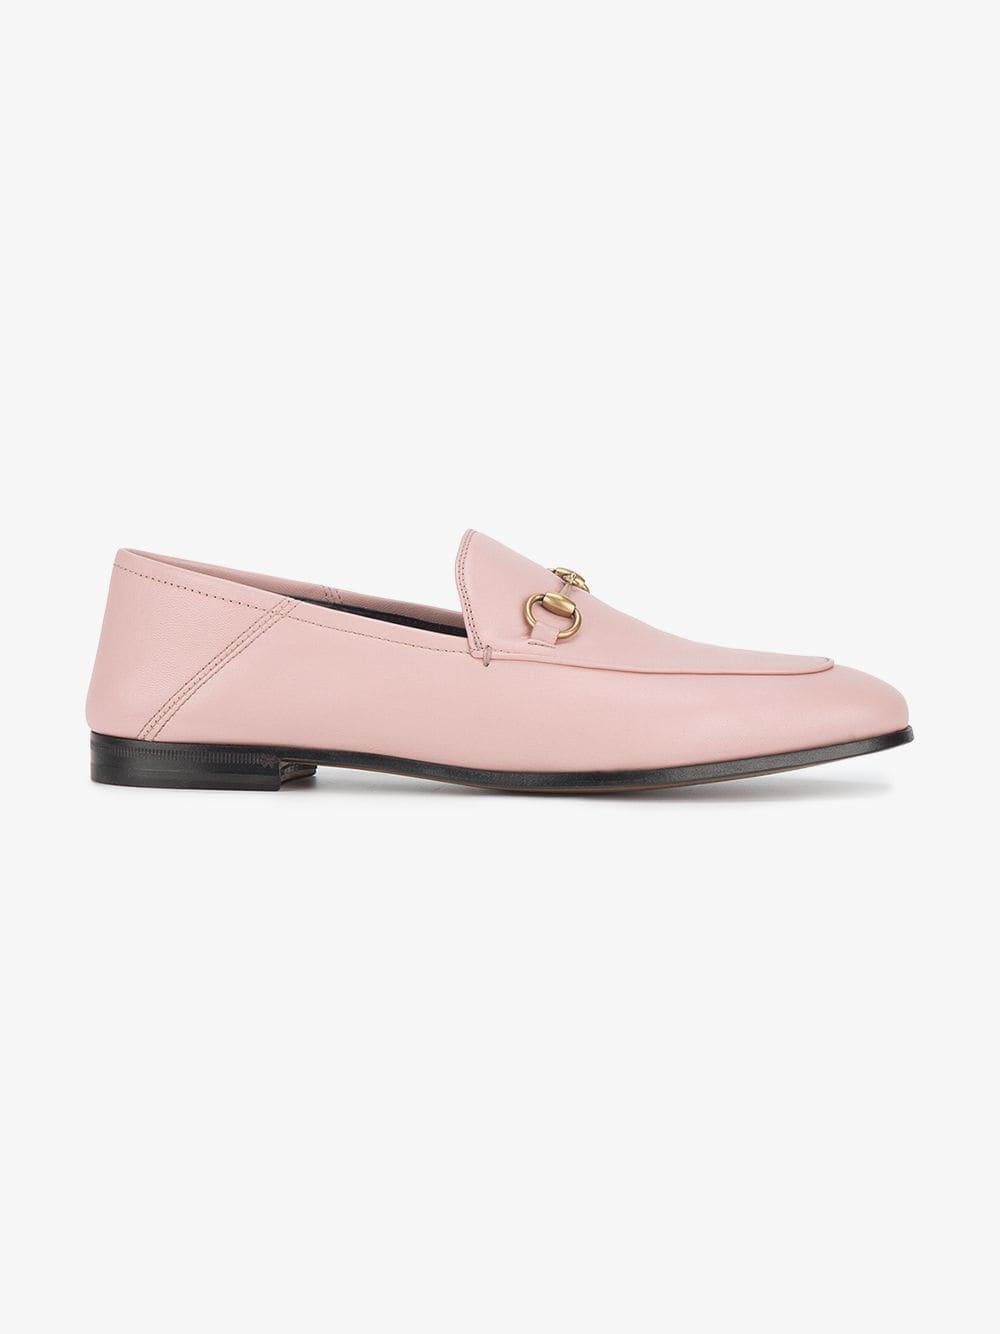 456181b9f34 Lyst - Gucci Pink Brixton Leather Loafers in Pink